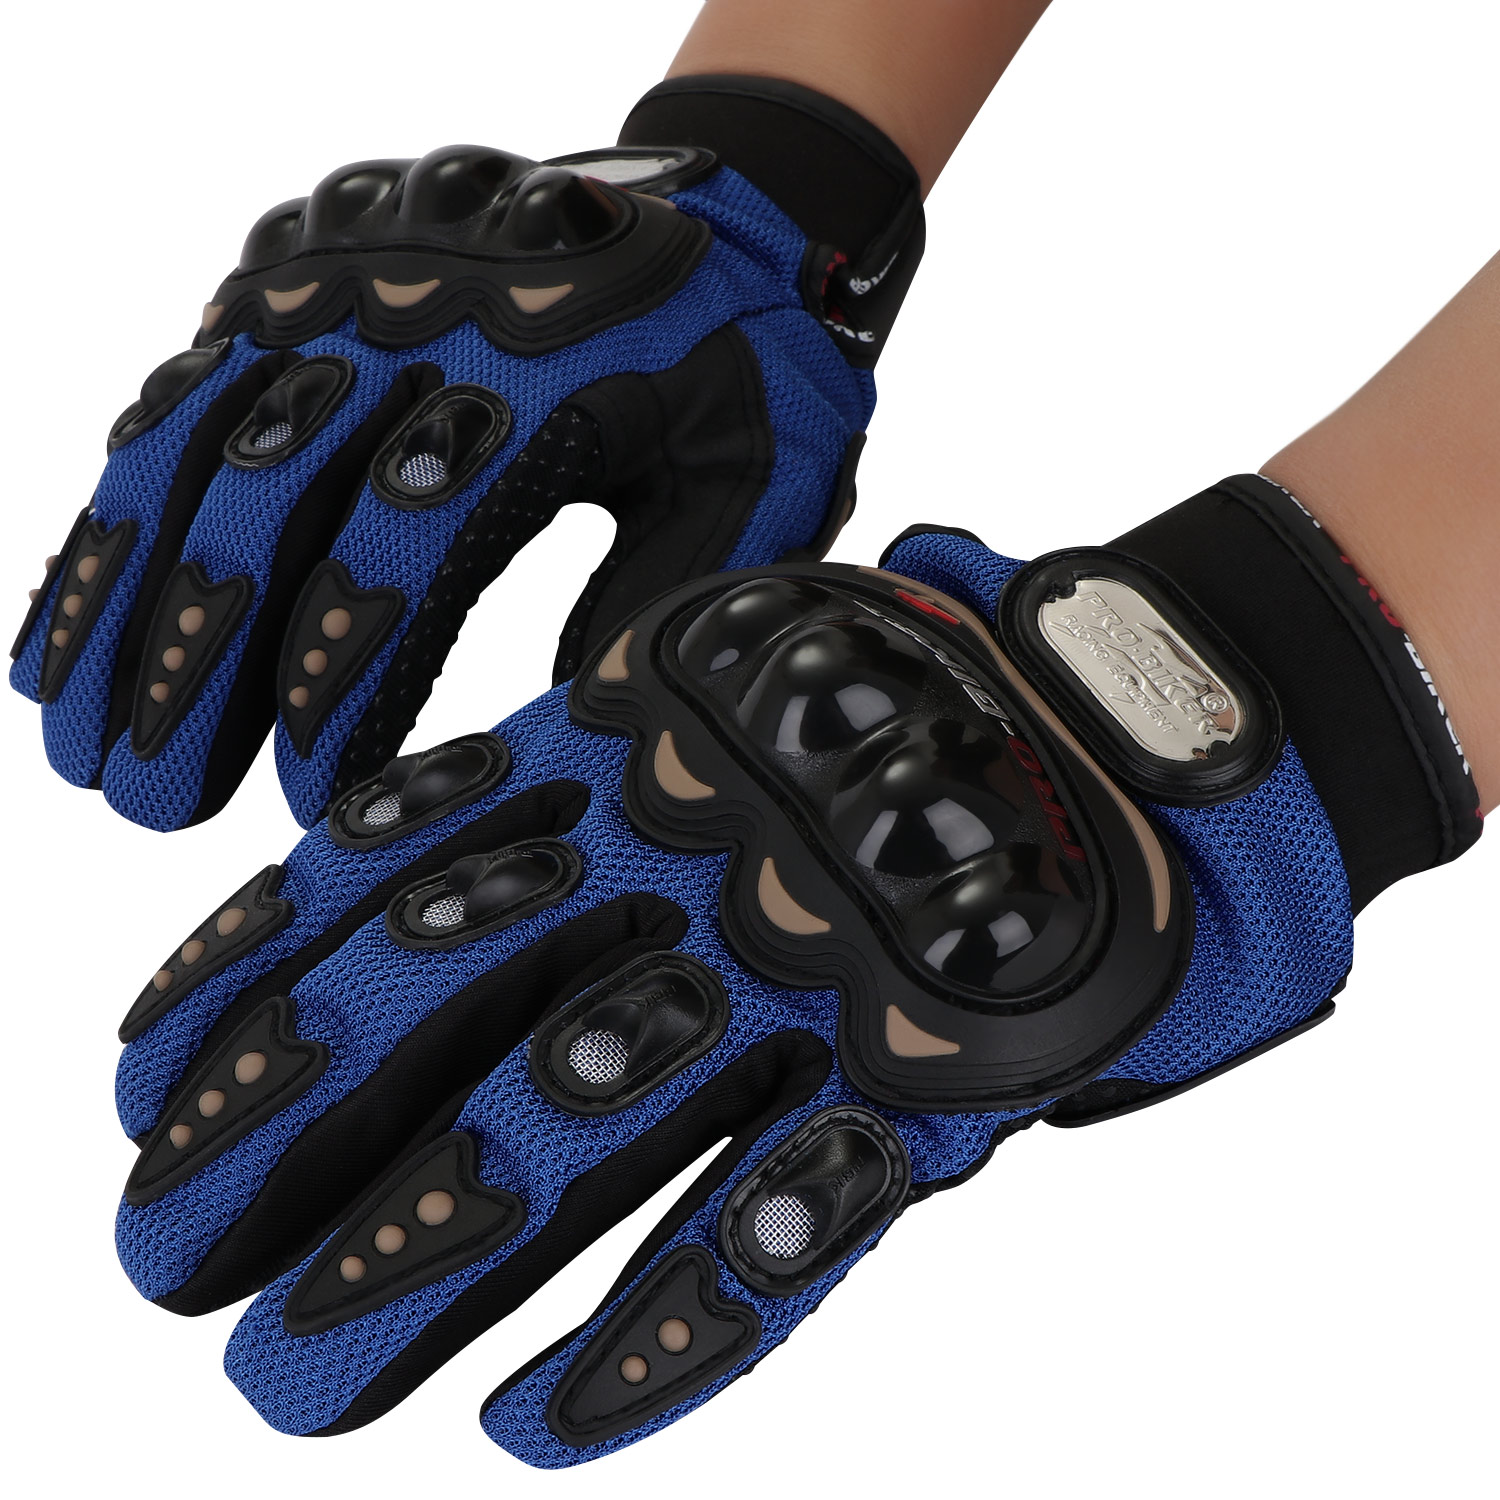 gants moto coque gloves motorcycle vtt trail protection gears racing motocross ebay. Black Bedroom Furniture Sets. Home Design Ideas